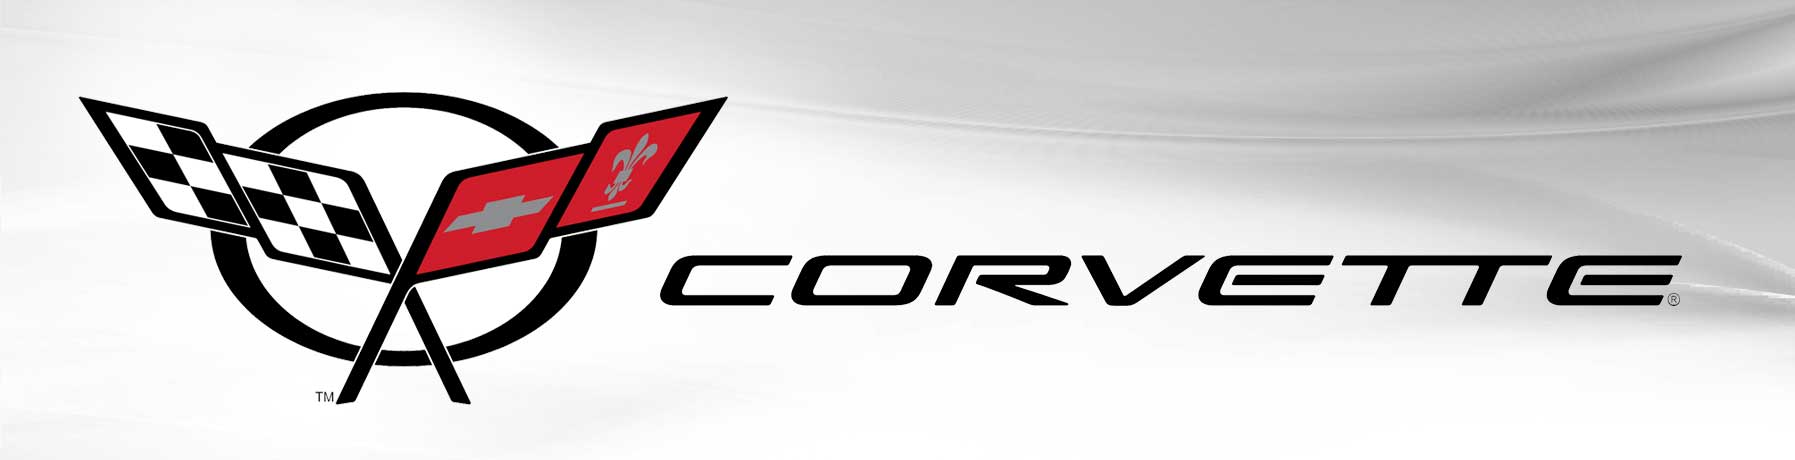 we service corvette cars